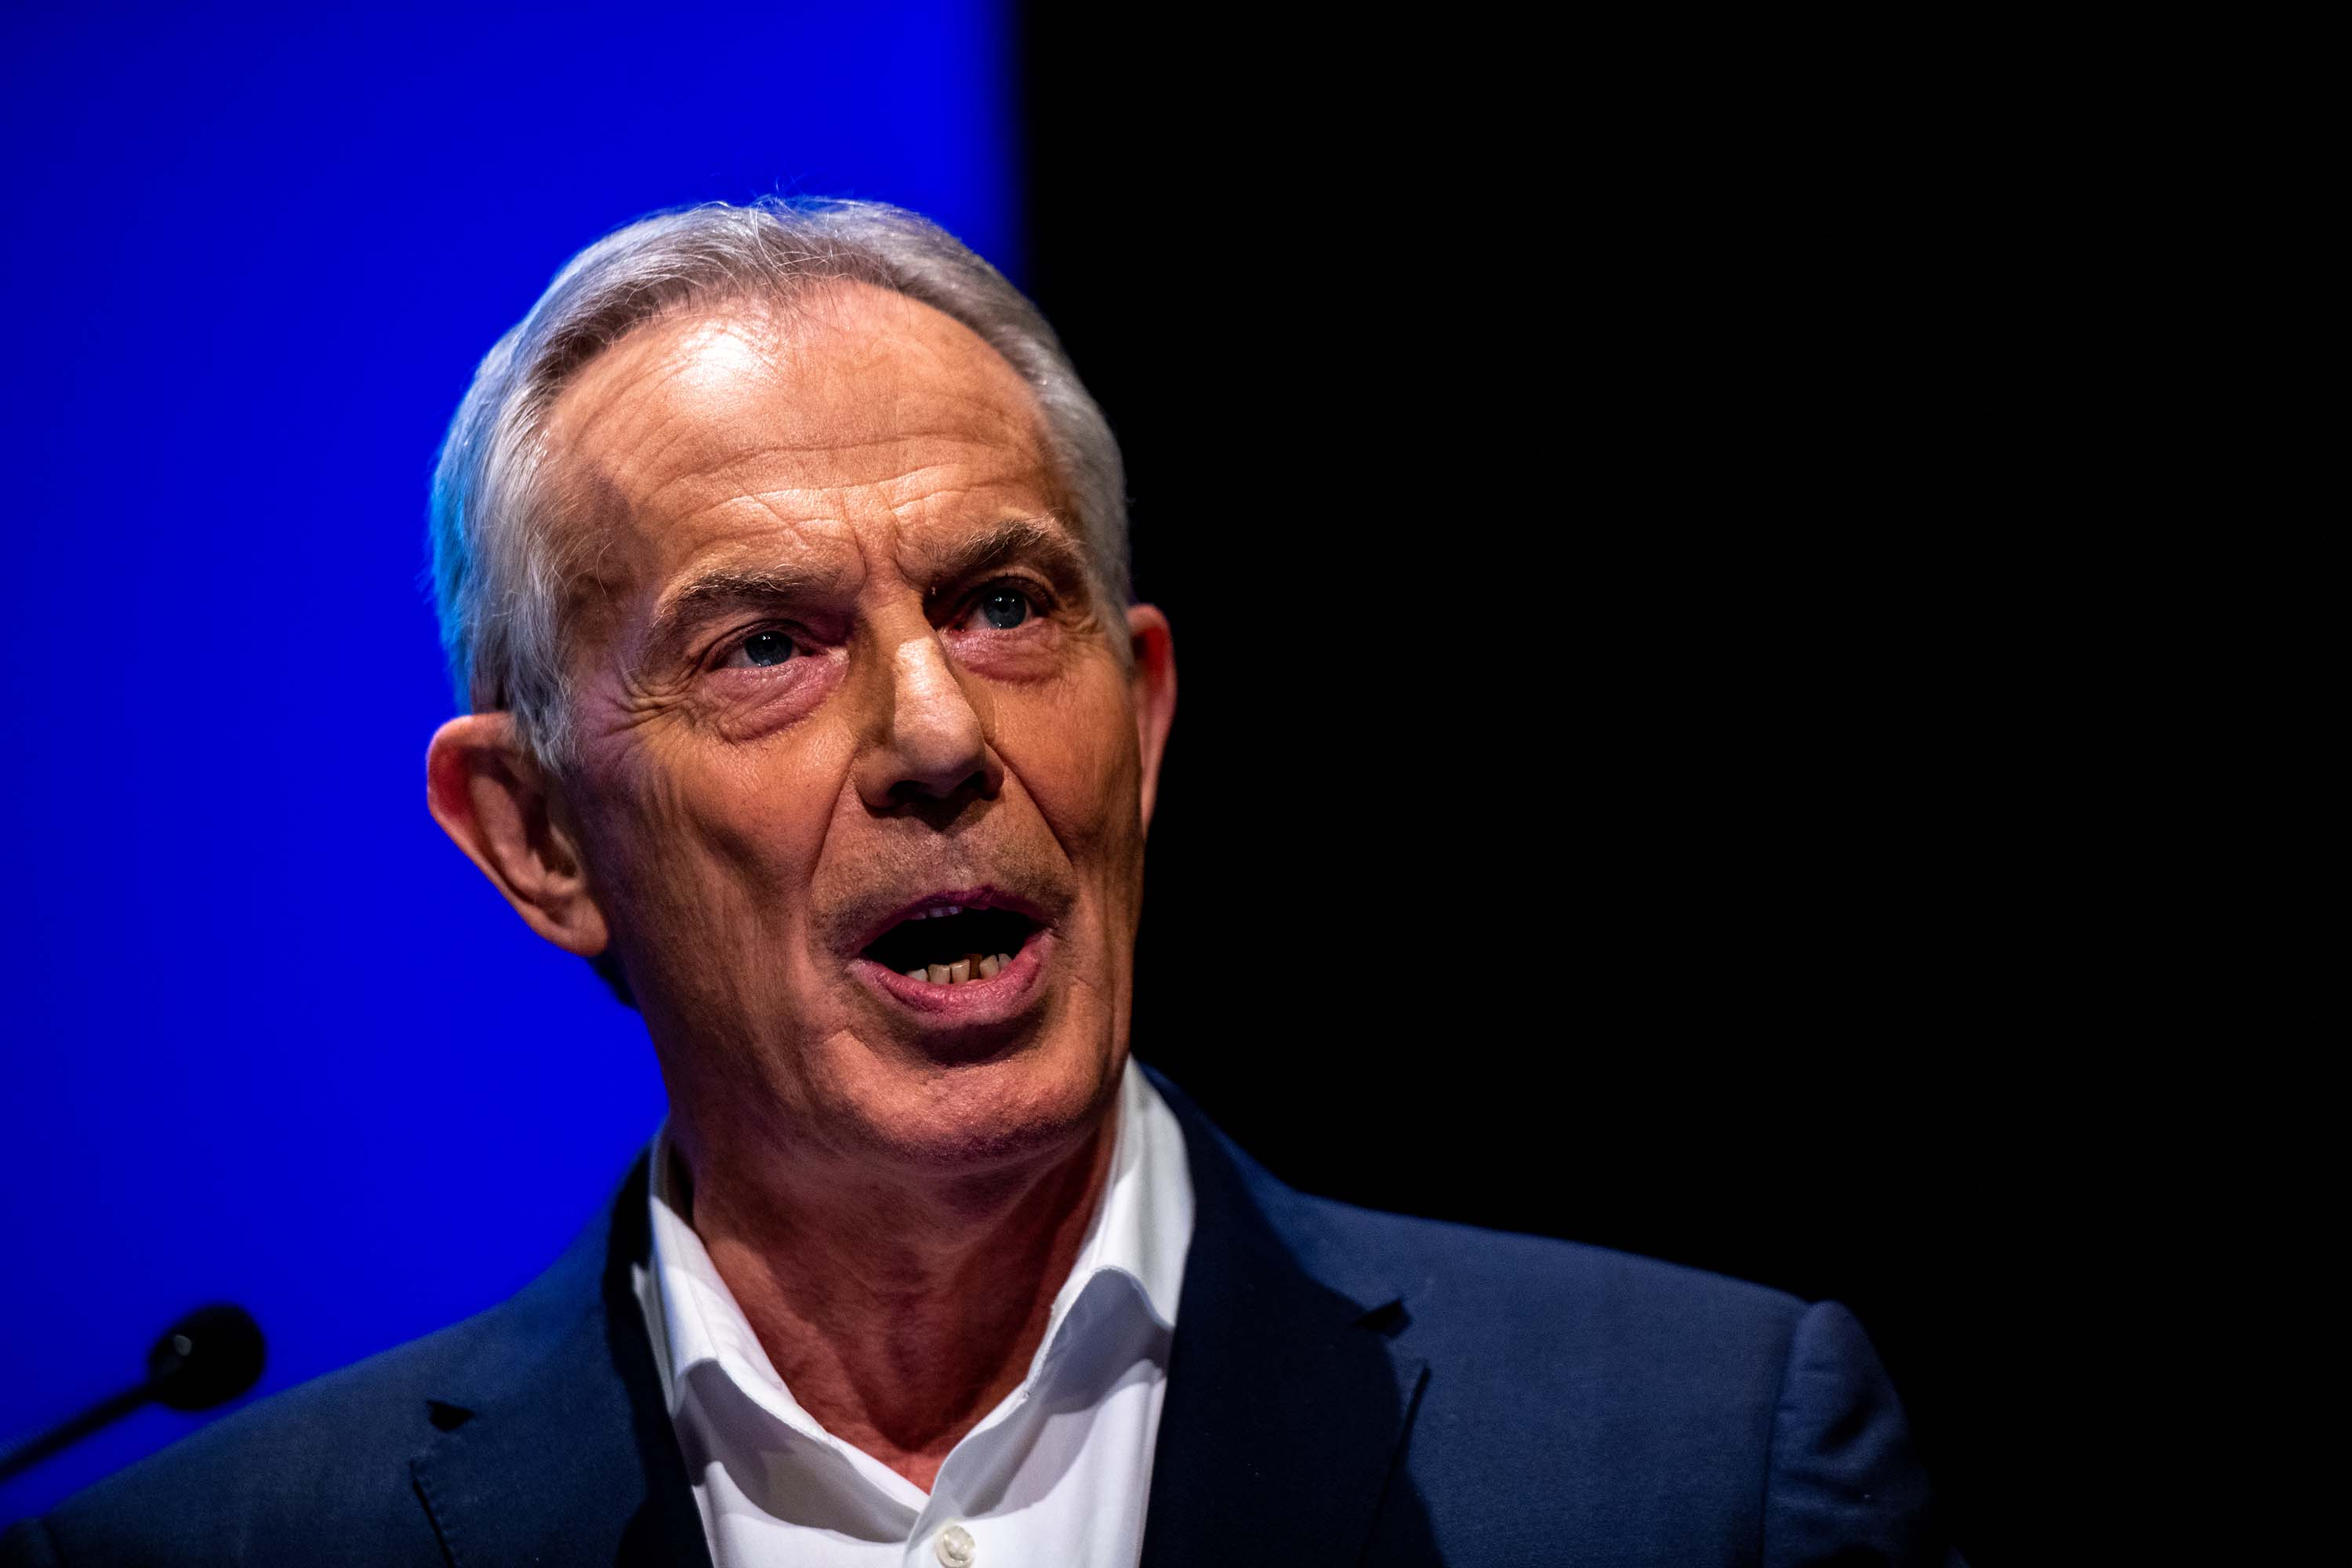 Former British Prime Minster Tony Blair speaks at an event in London in December 2019.